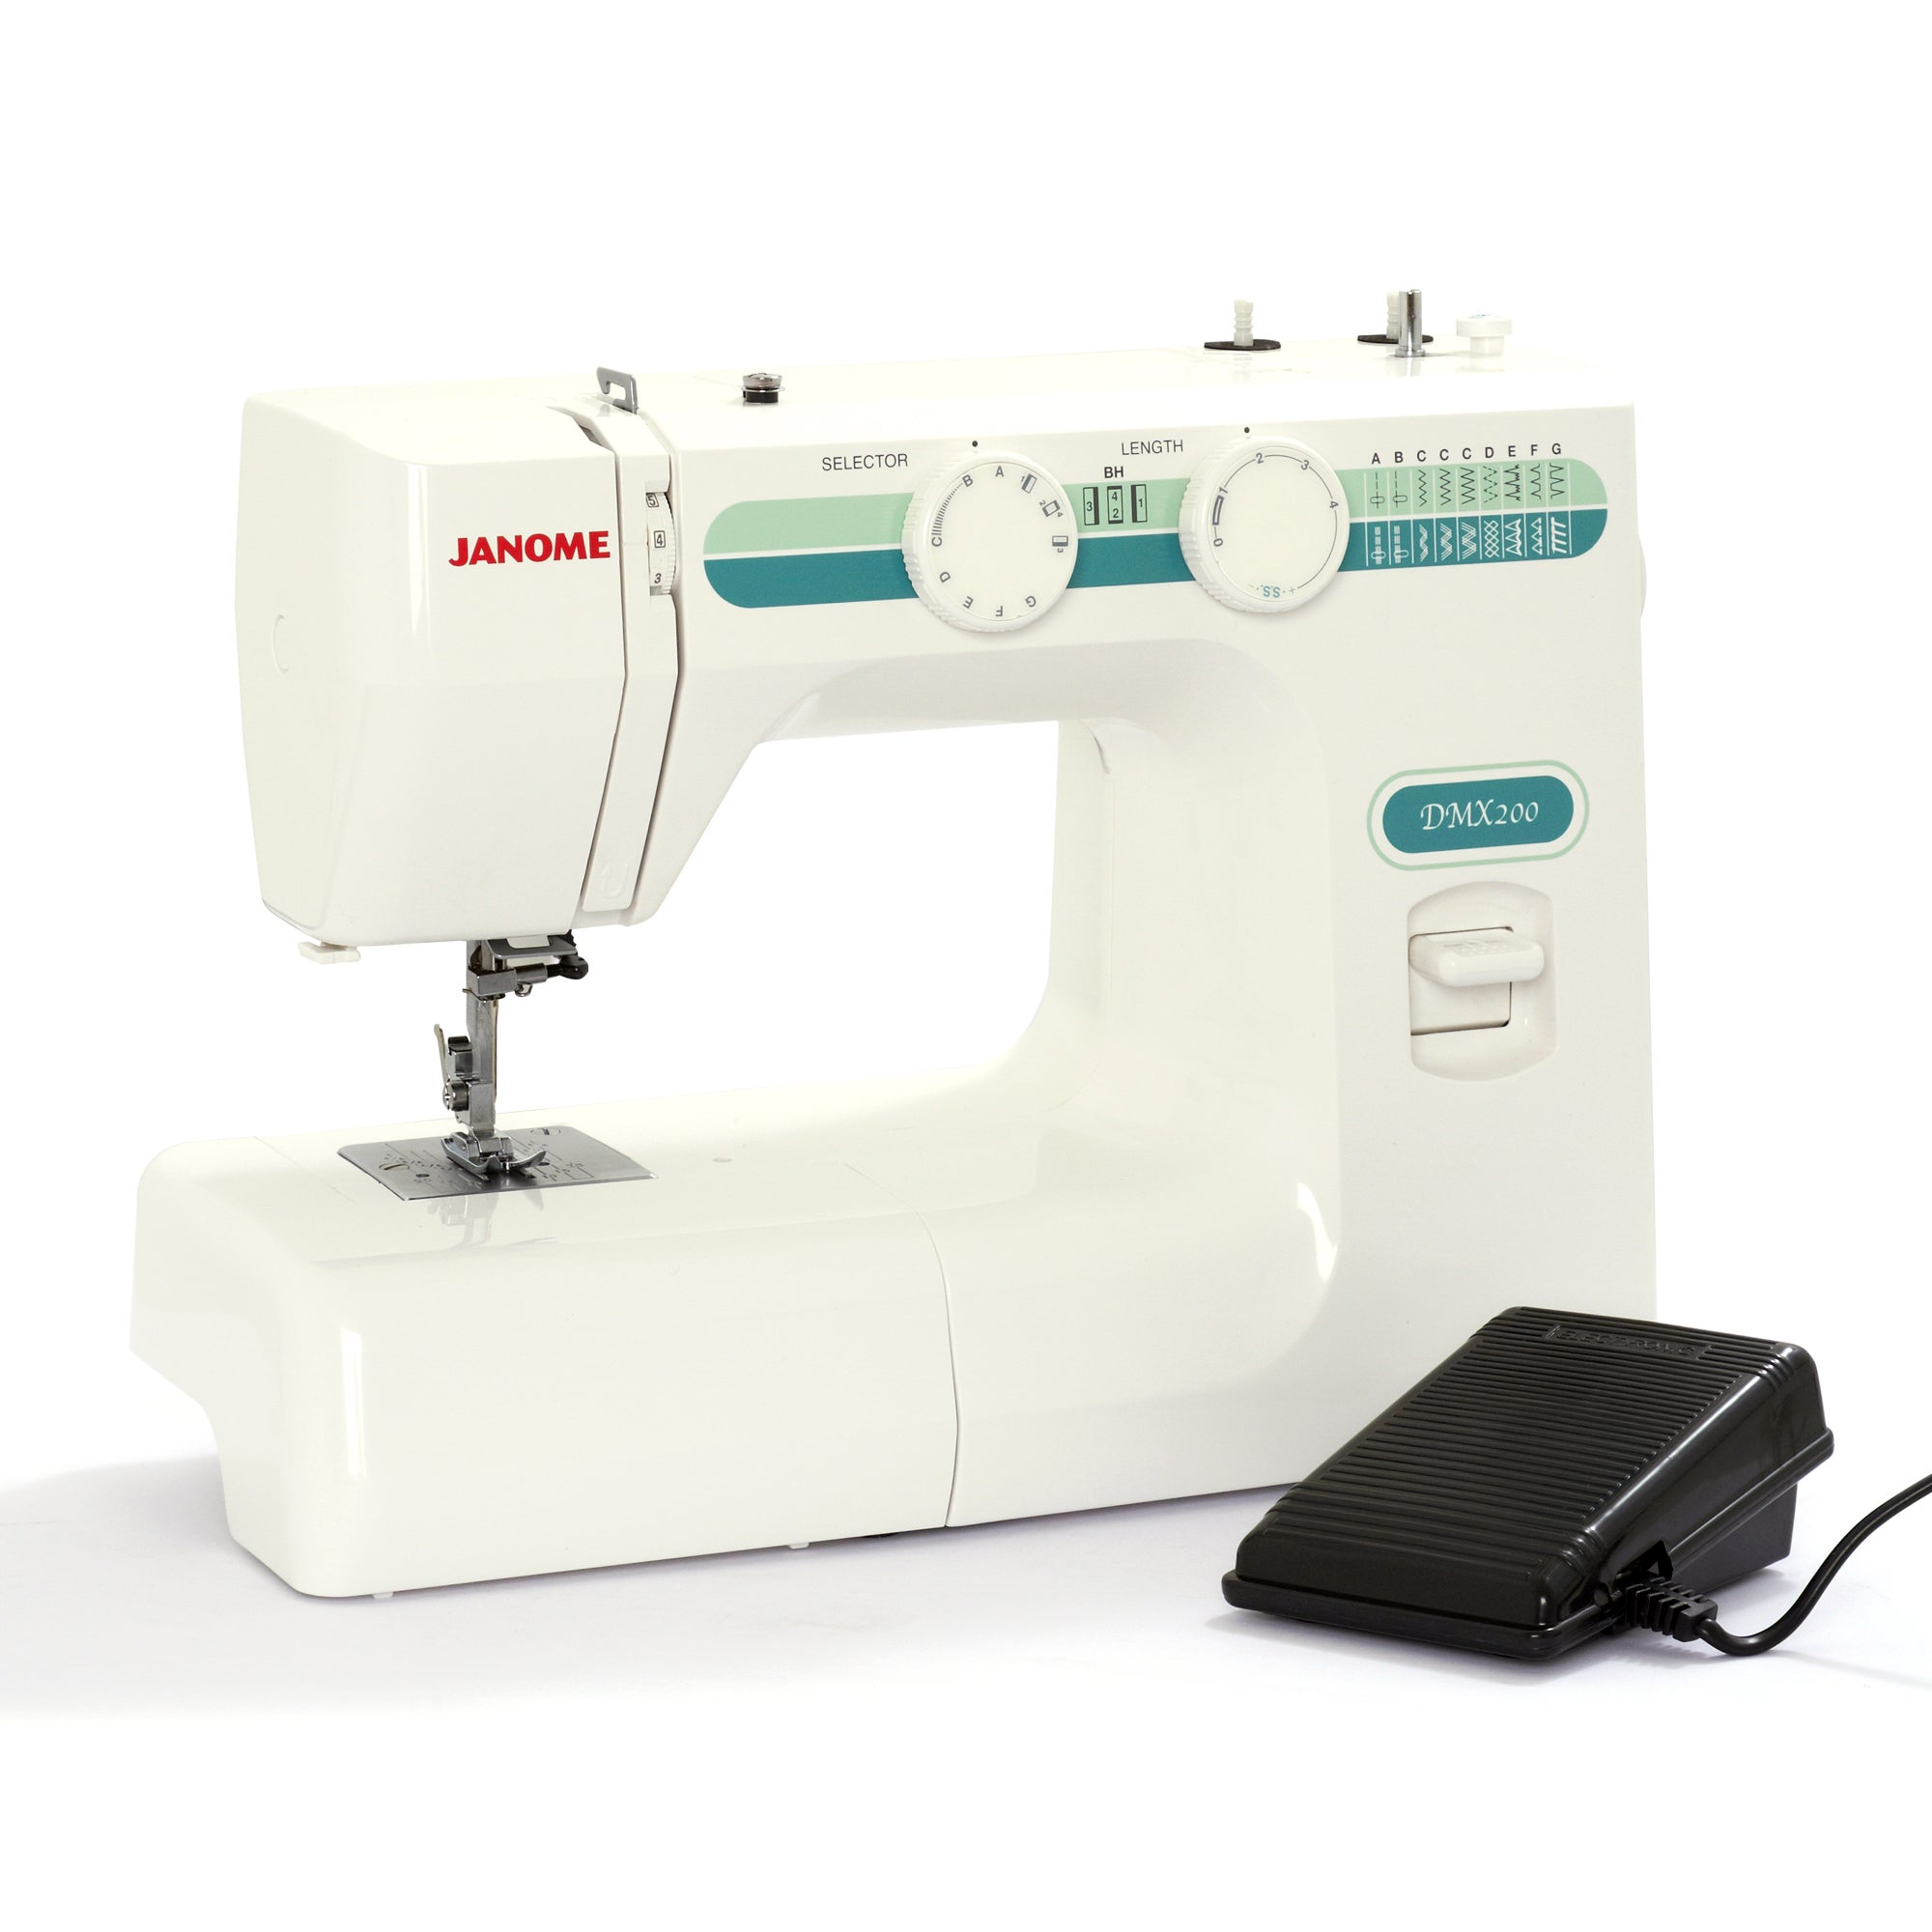 Buy cheap janome sewing machine compare other appliances for Arts and crafts sewing machine